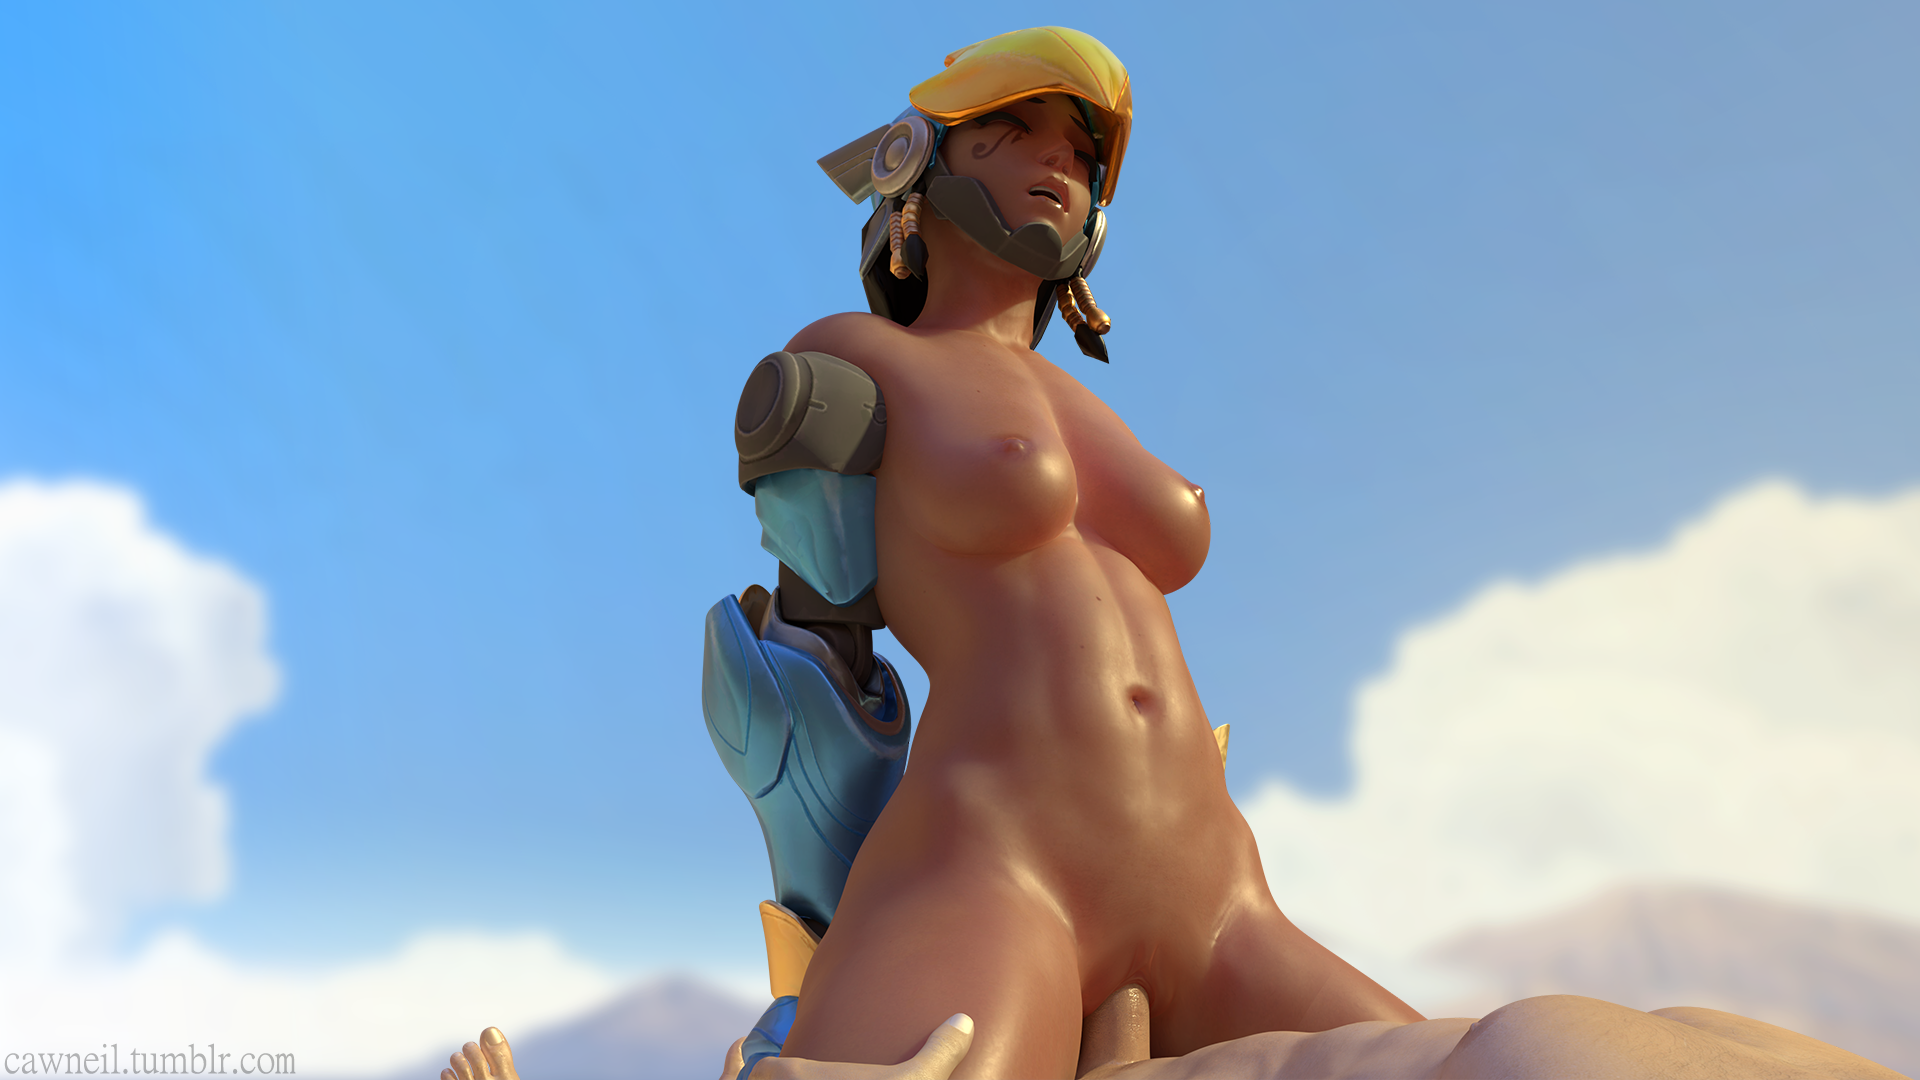 2450343 - Cawneil Overlook Pharah